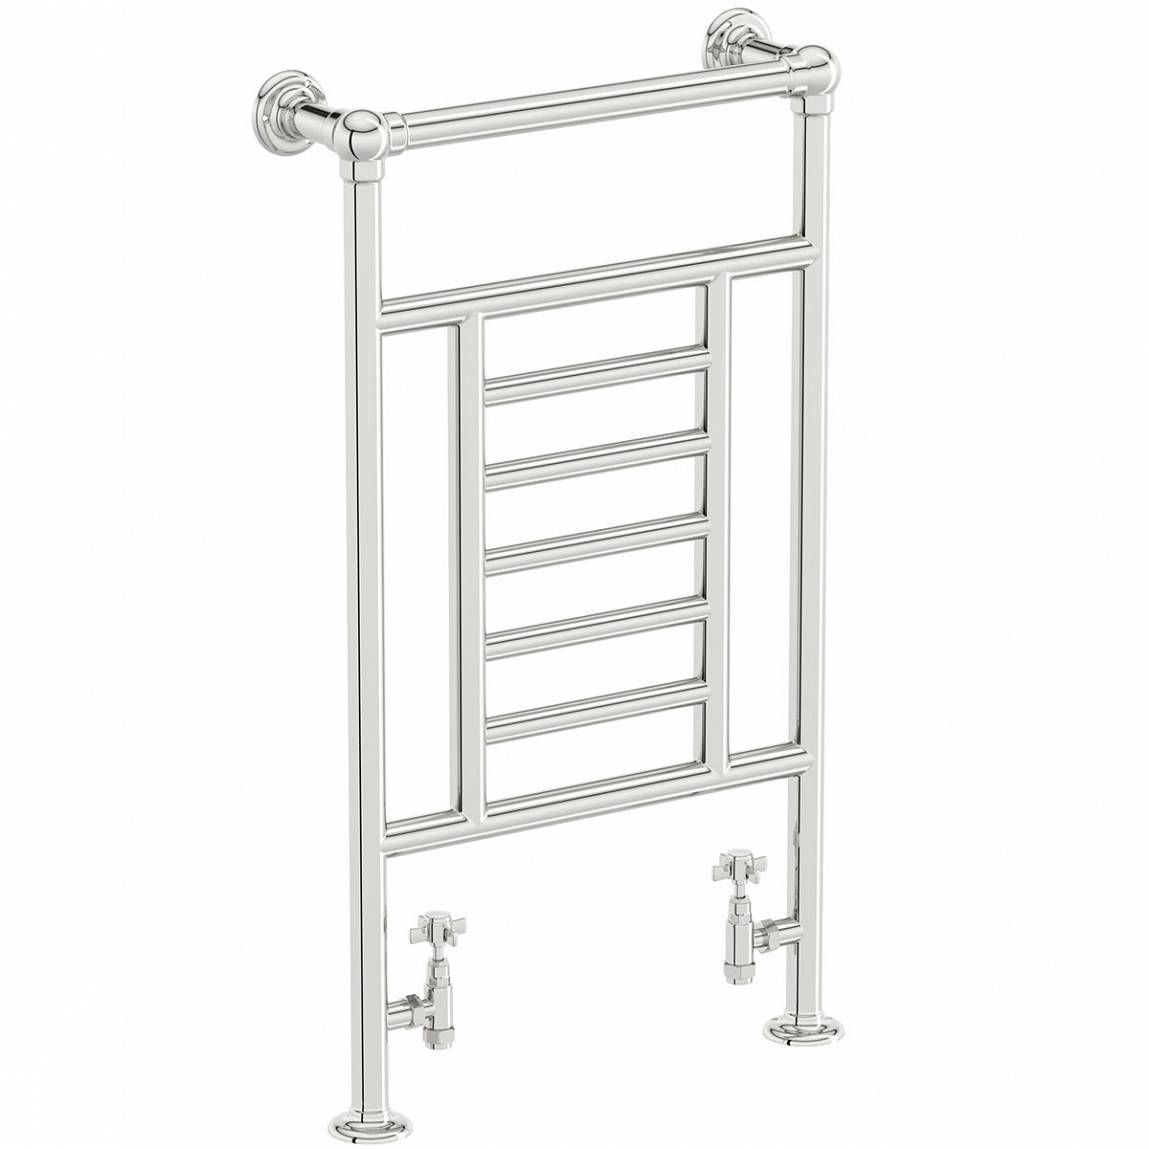 Image of Buckingham Heated Towel Rail 914 x 535